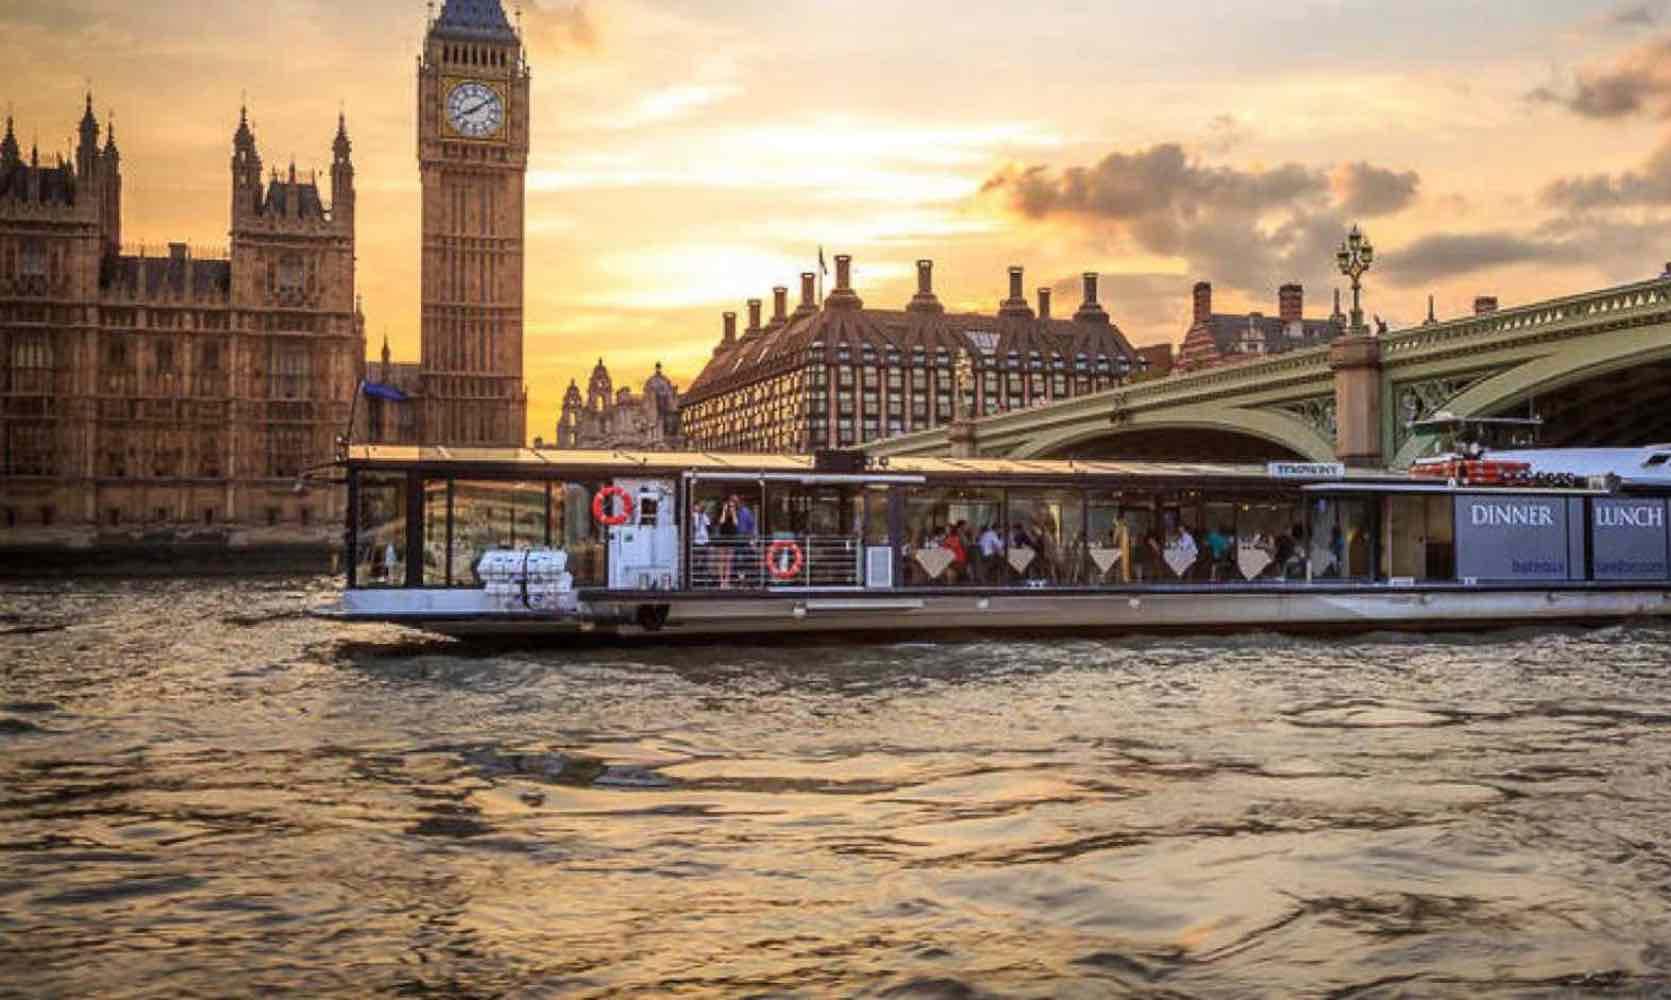 Big Ben, the parliament and boat trip on the river Thames